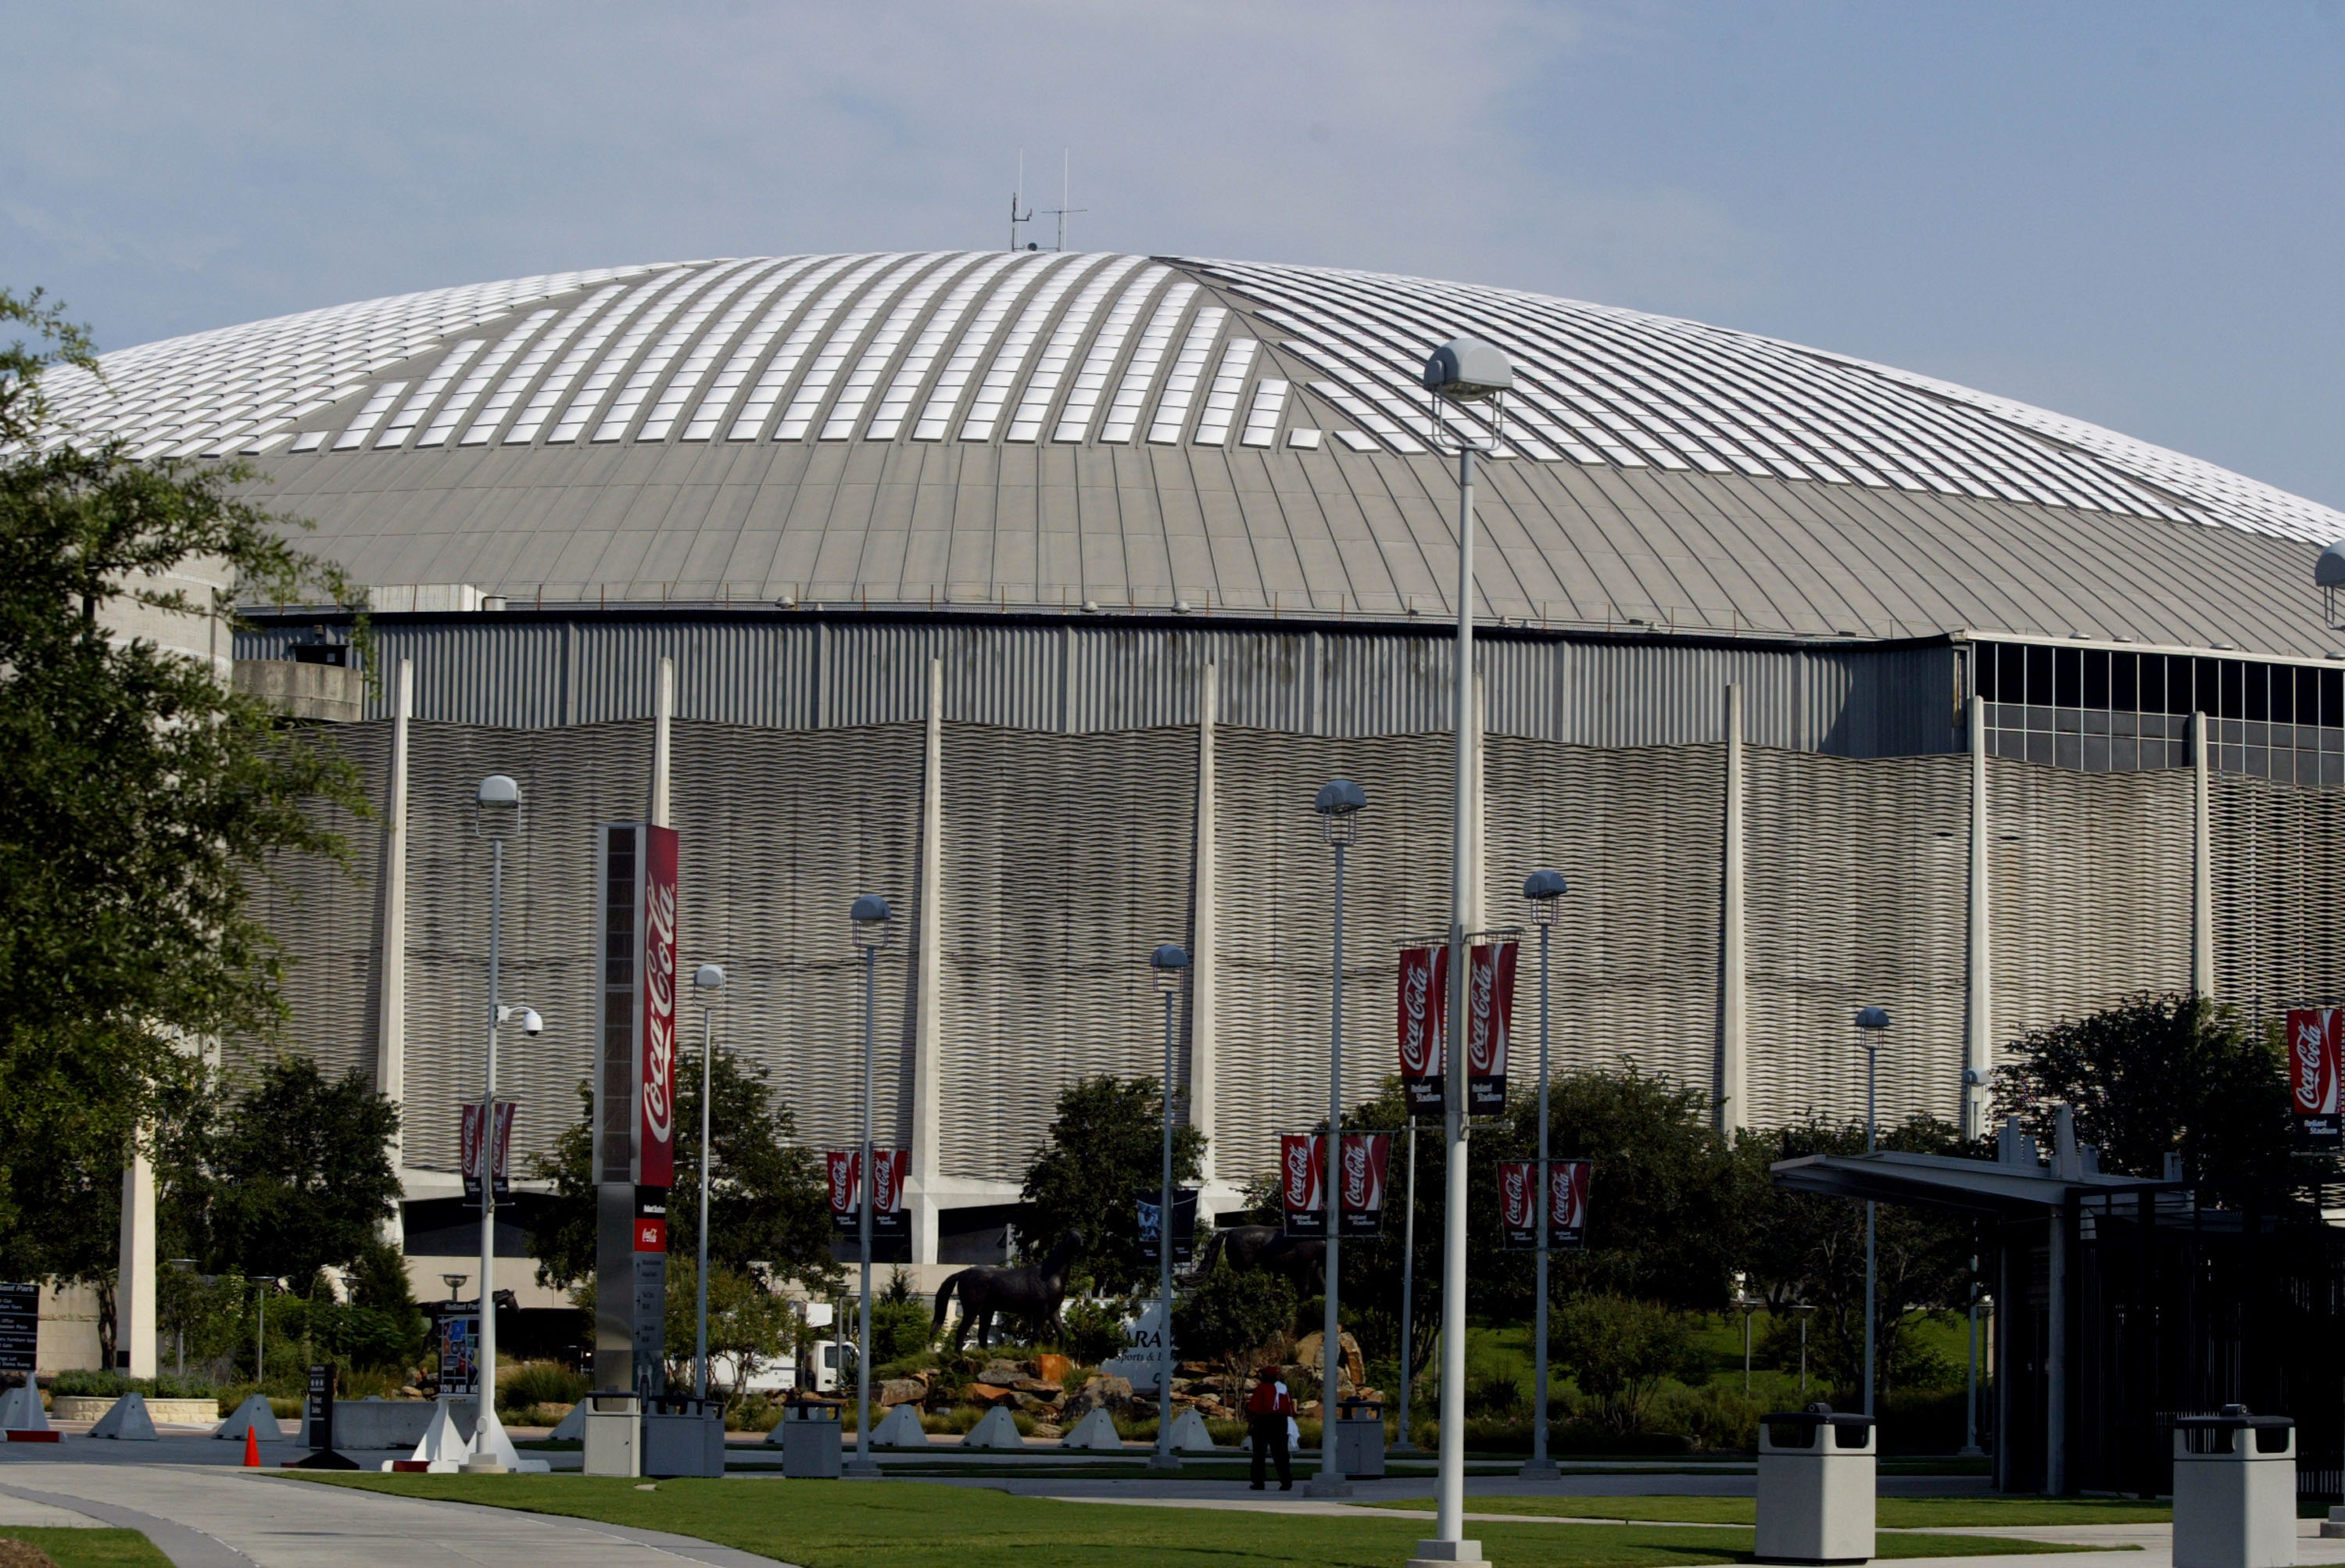 The Houston Astrodome in Houston, Texas prepares to accept some 25,000-30,000 refugees from Hurricane Katrina who were staying in the New Orleans Superdome. August 31, 2005.